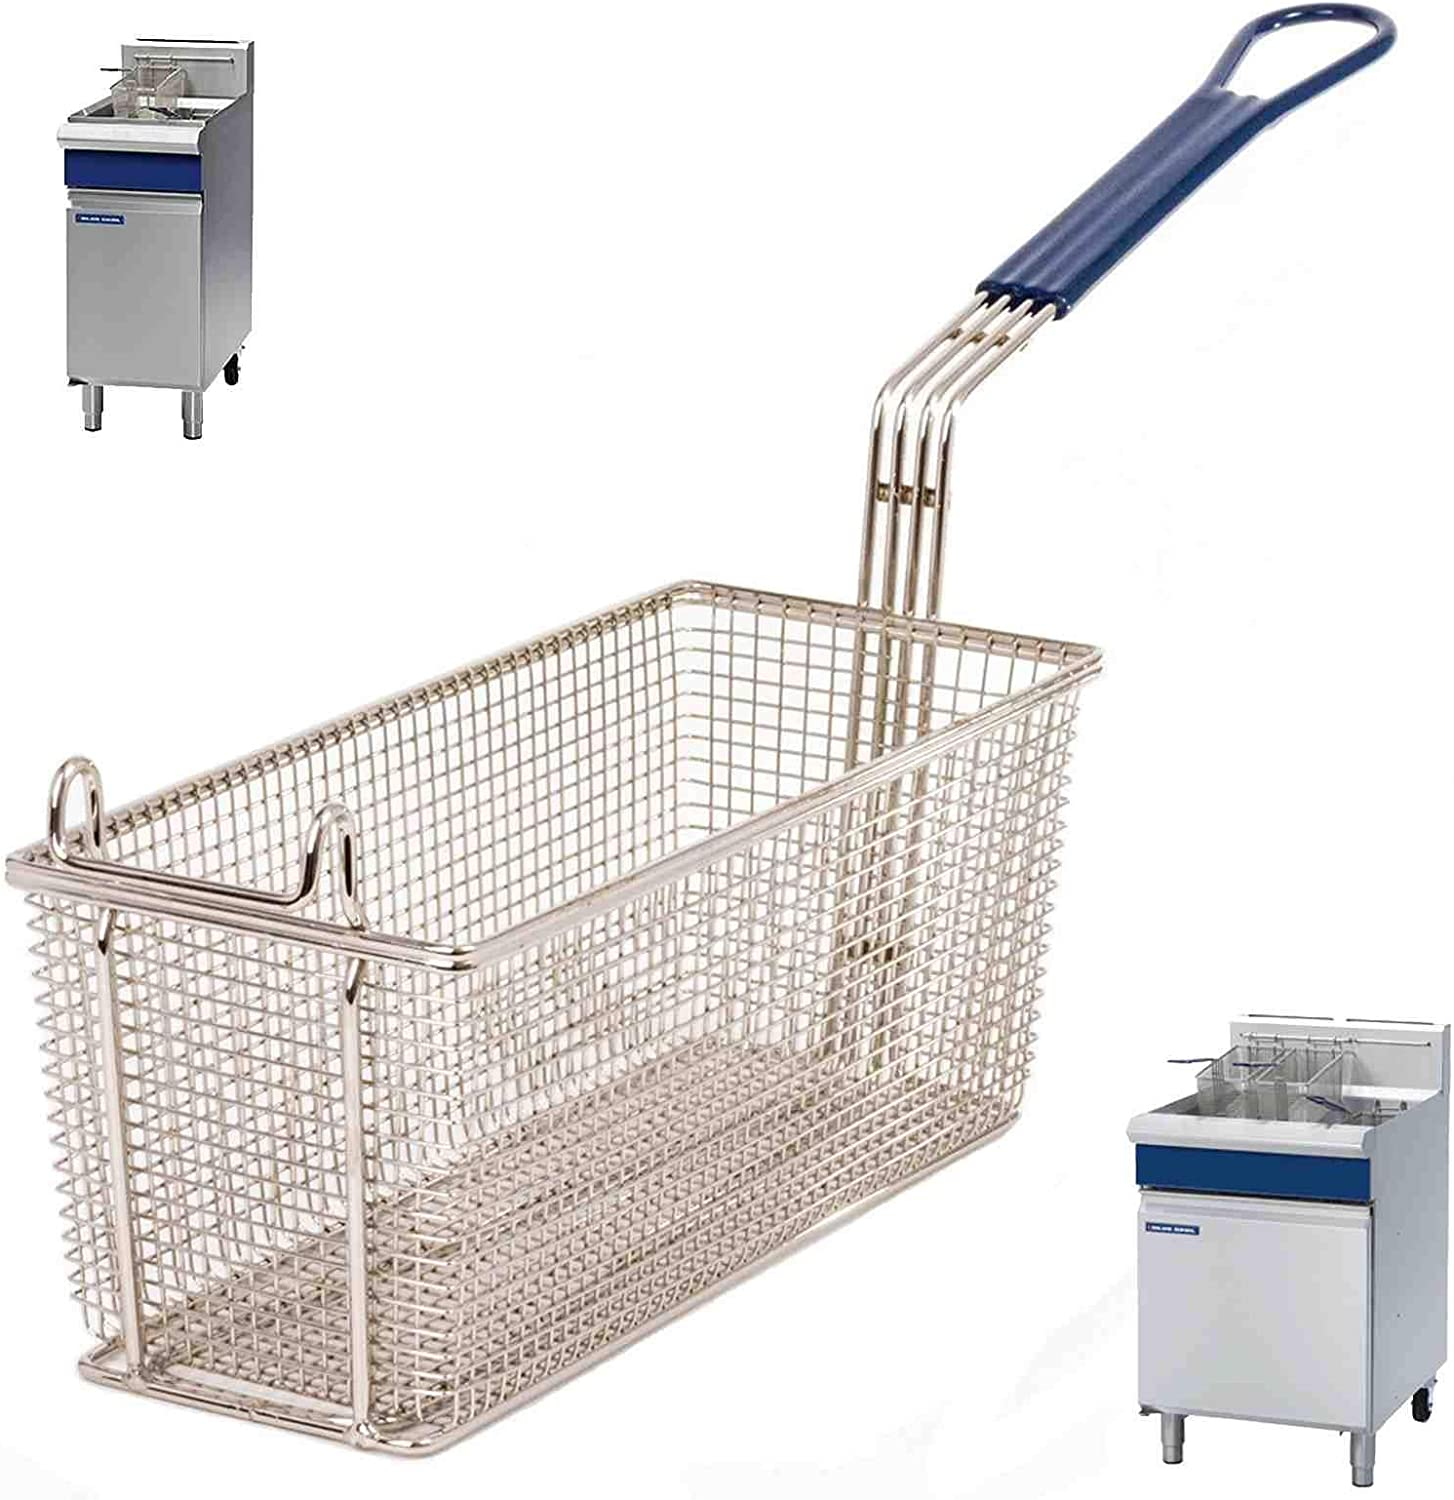 Fryer Basket  Spare for PITCO Fryers electric /& gas FRIALATOR 45C 35C SG18 SG14